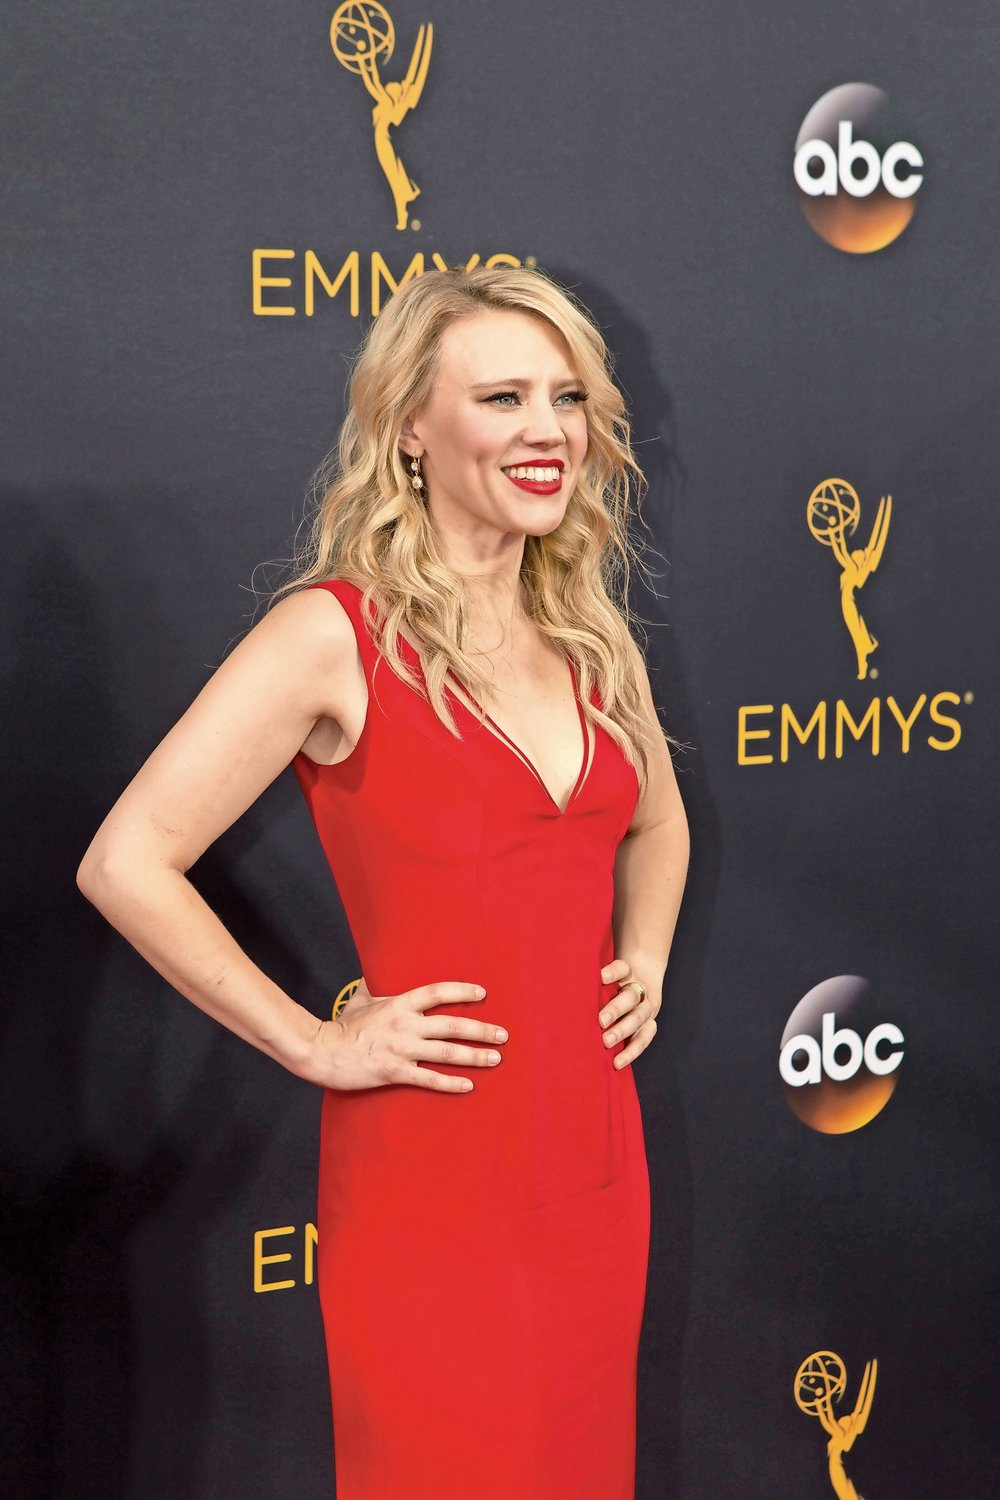 Actress Kate McKinnon, who graduated from North Shore High School in 2002, on the red carpet at the 68th Emmy Awards.